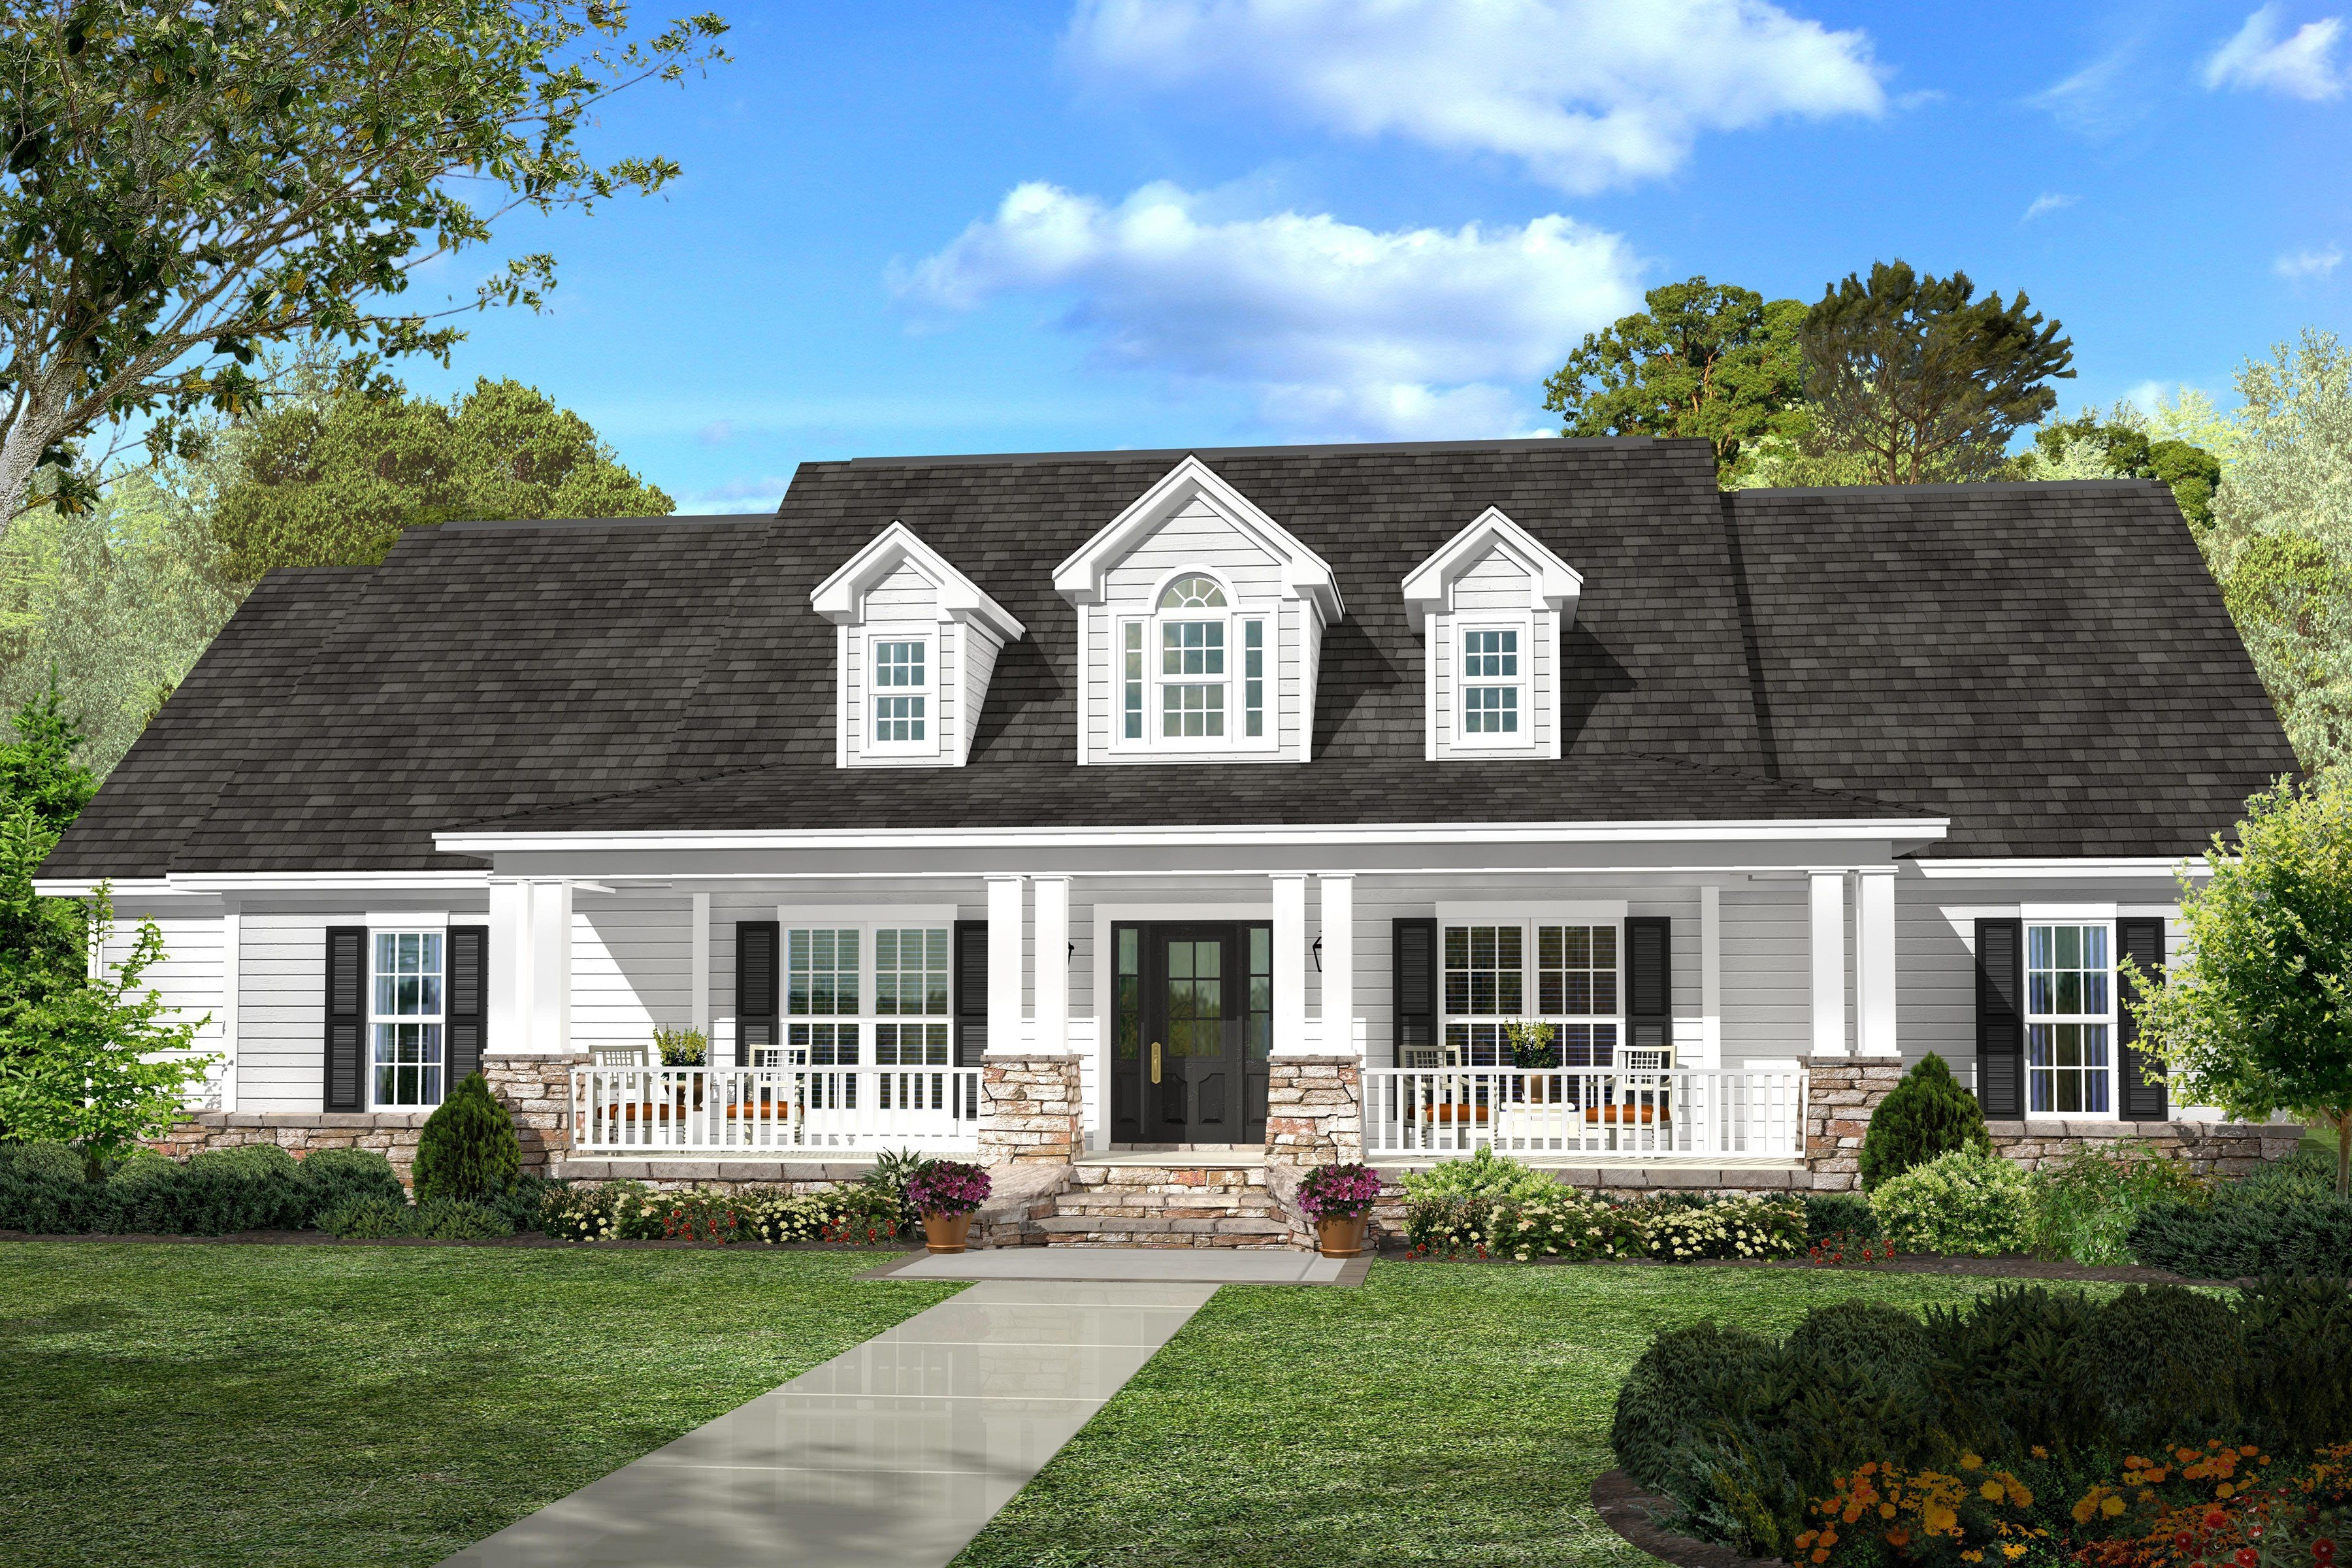 Best Country House Plan 142 1131 4 Bedrm 2420 Sq Ft Home Theplancollection With Pictures